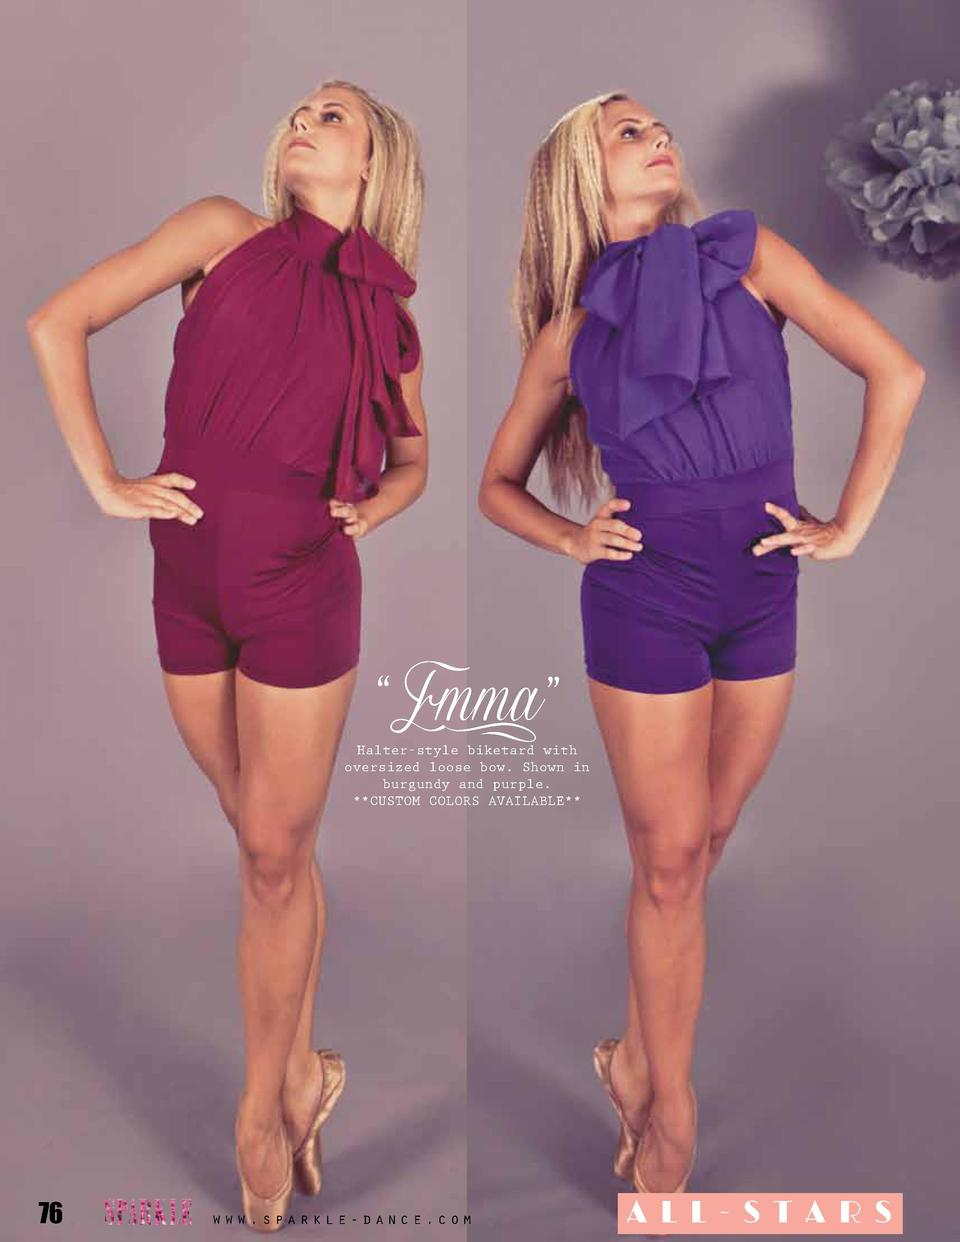 Emma     Halter-style biketard with oversized loose bow. Shown in burgundy and purple.   Custom colors available    76 ...